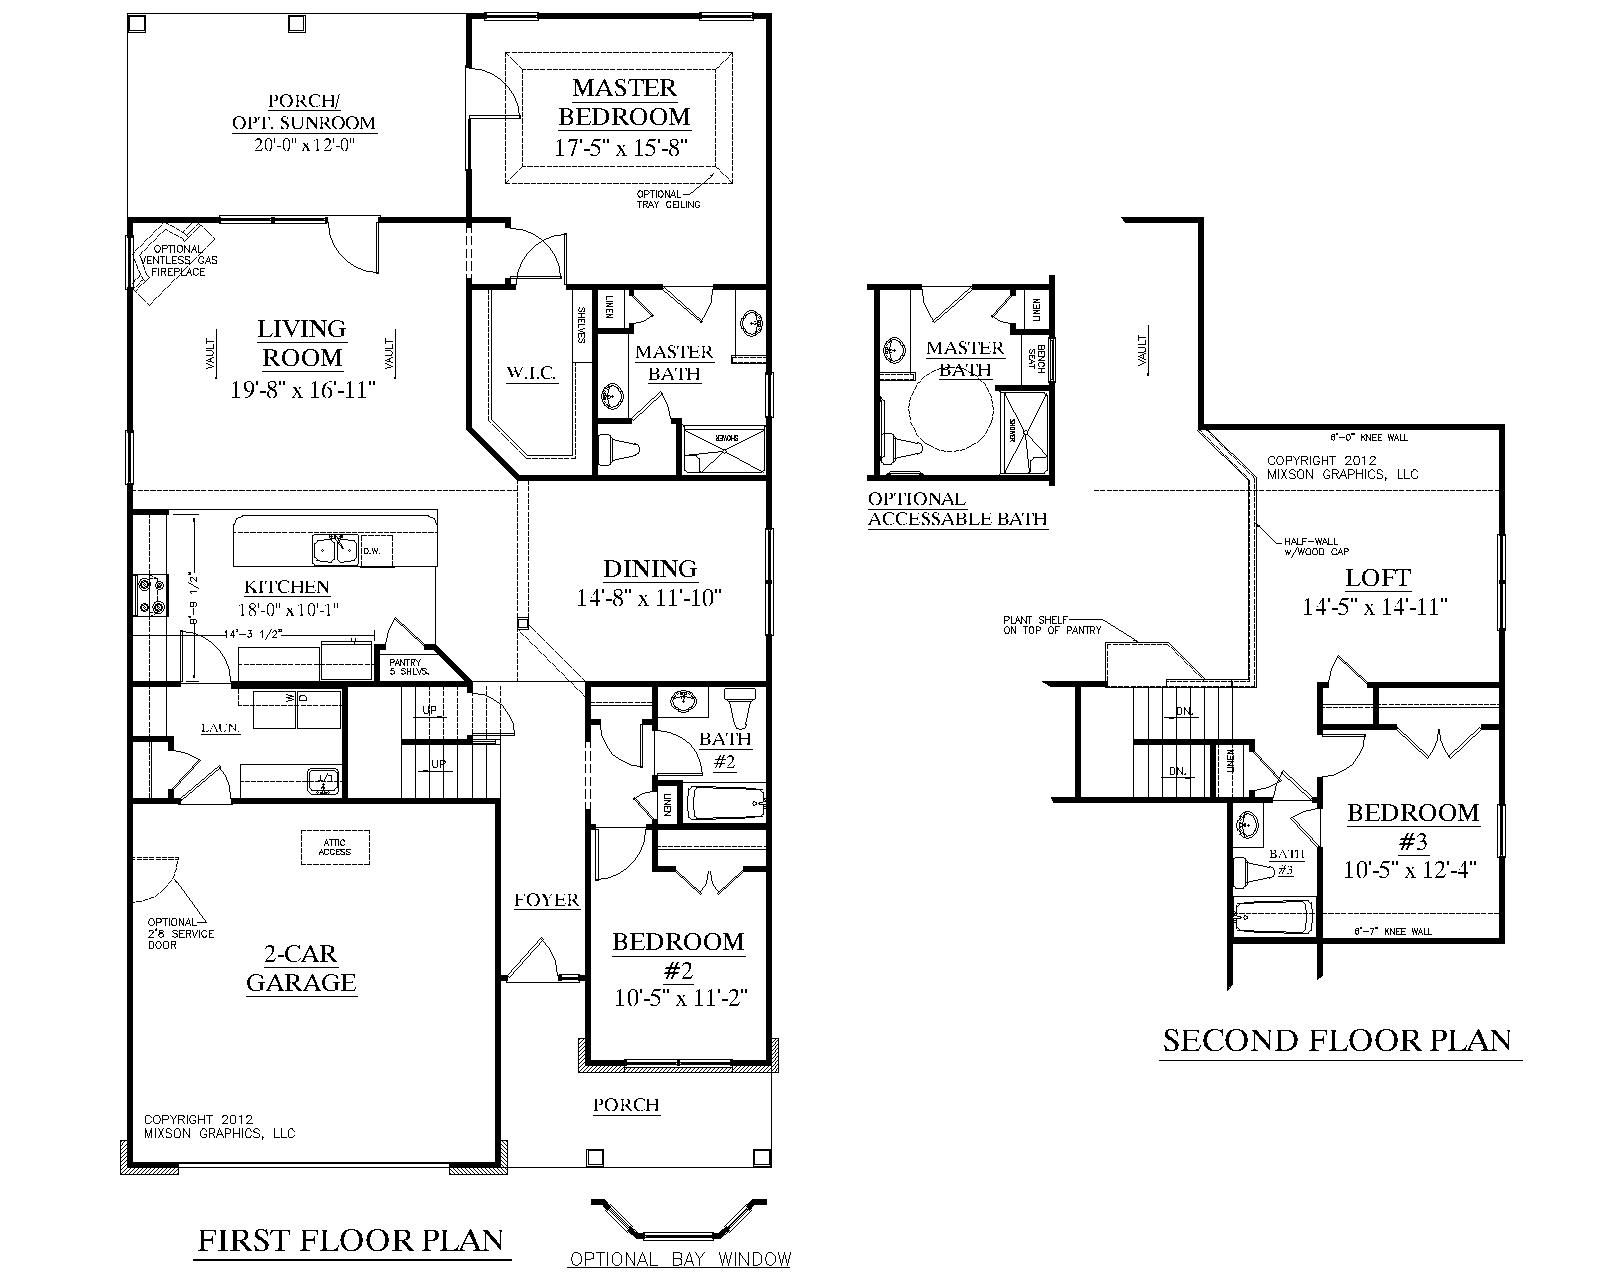 House plan 2224 kingstree floor plan traditional 1 1 2 for Find home blueprints